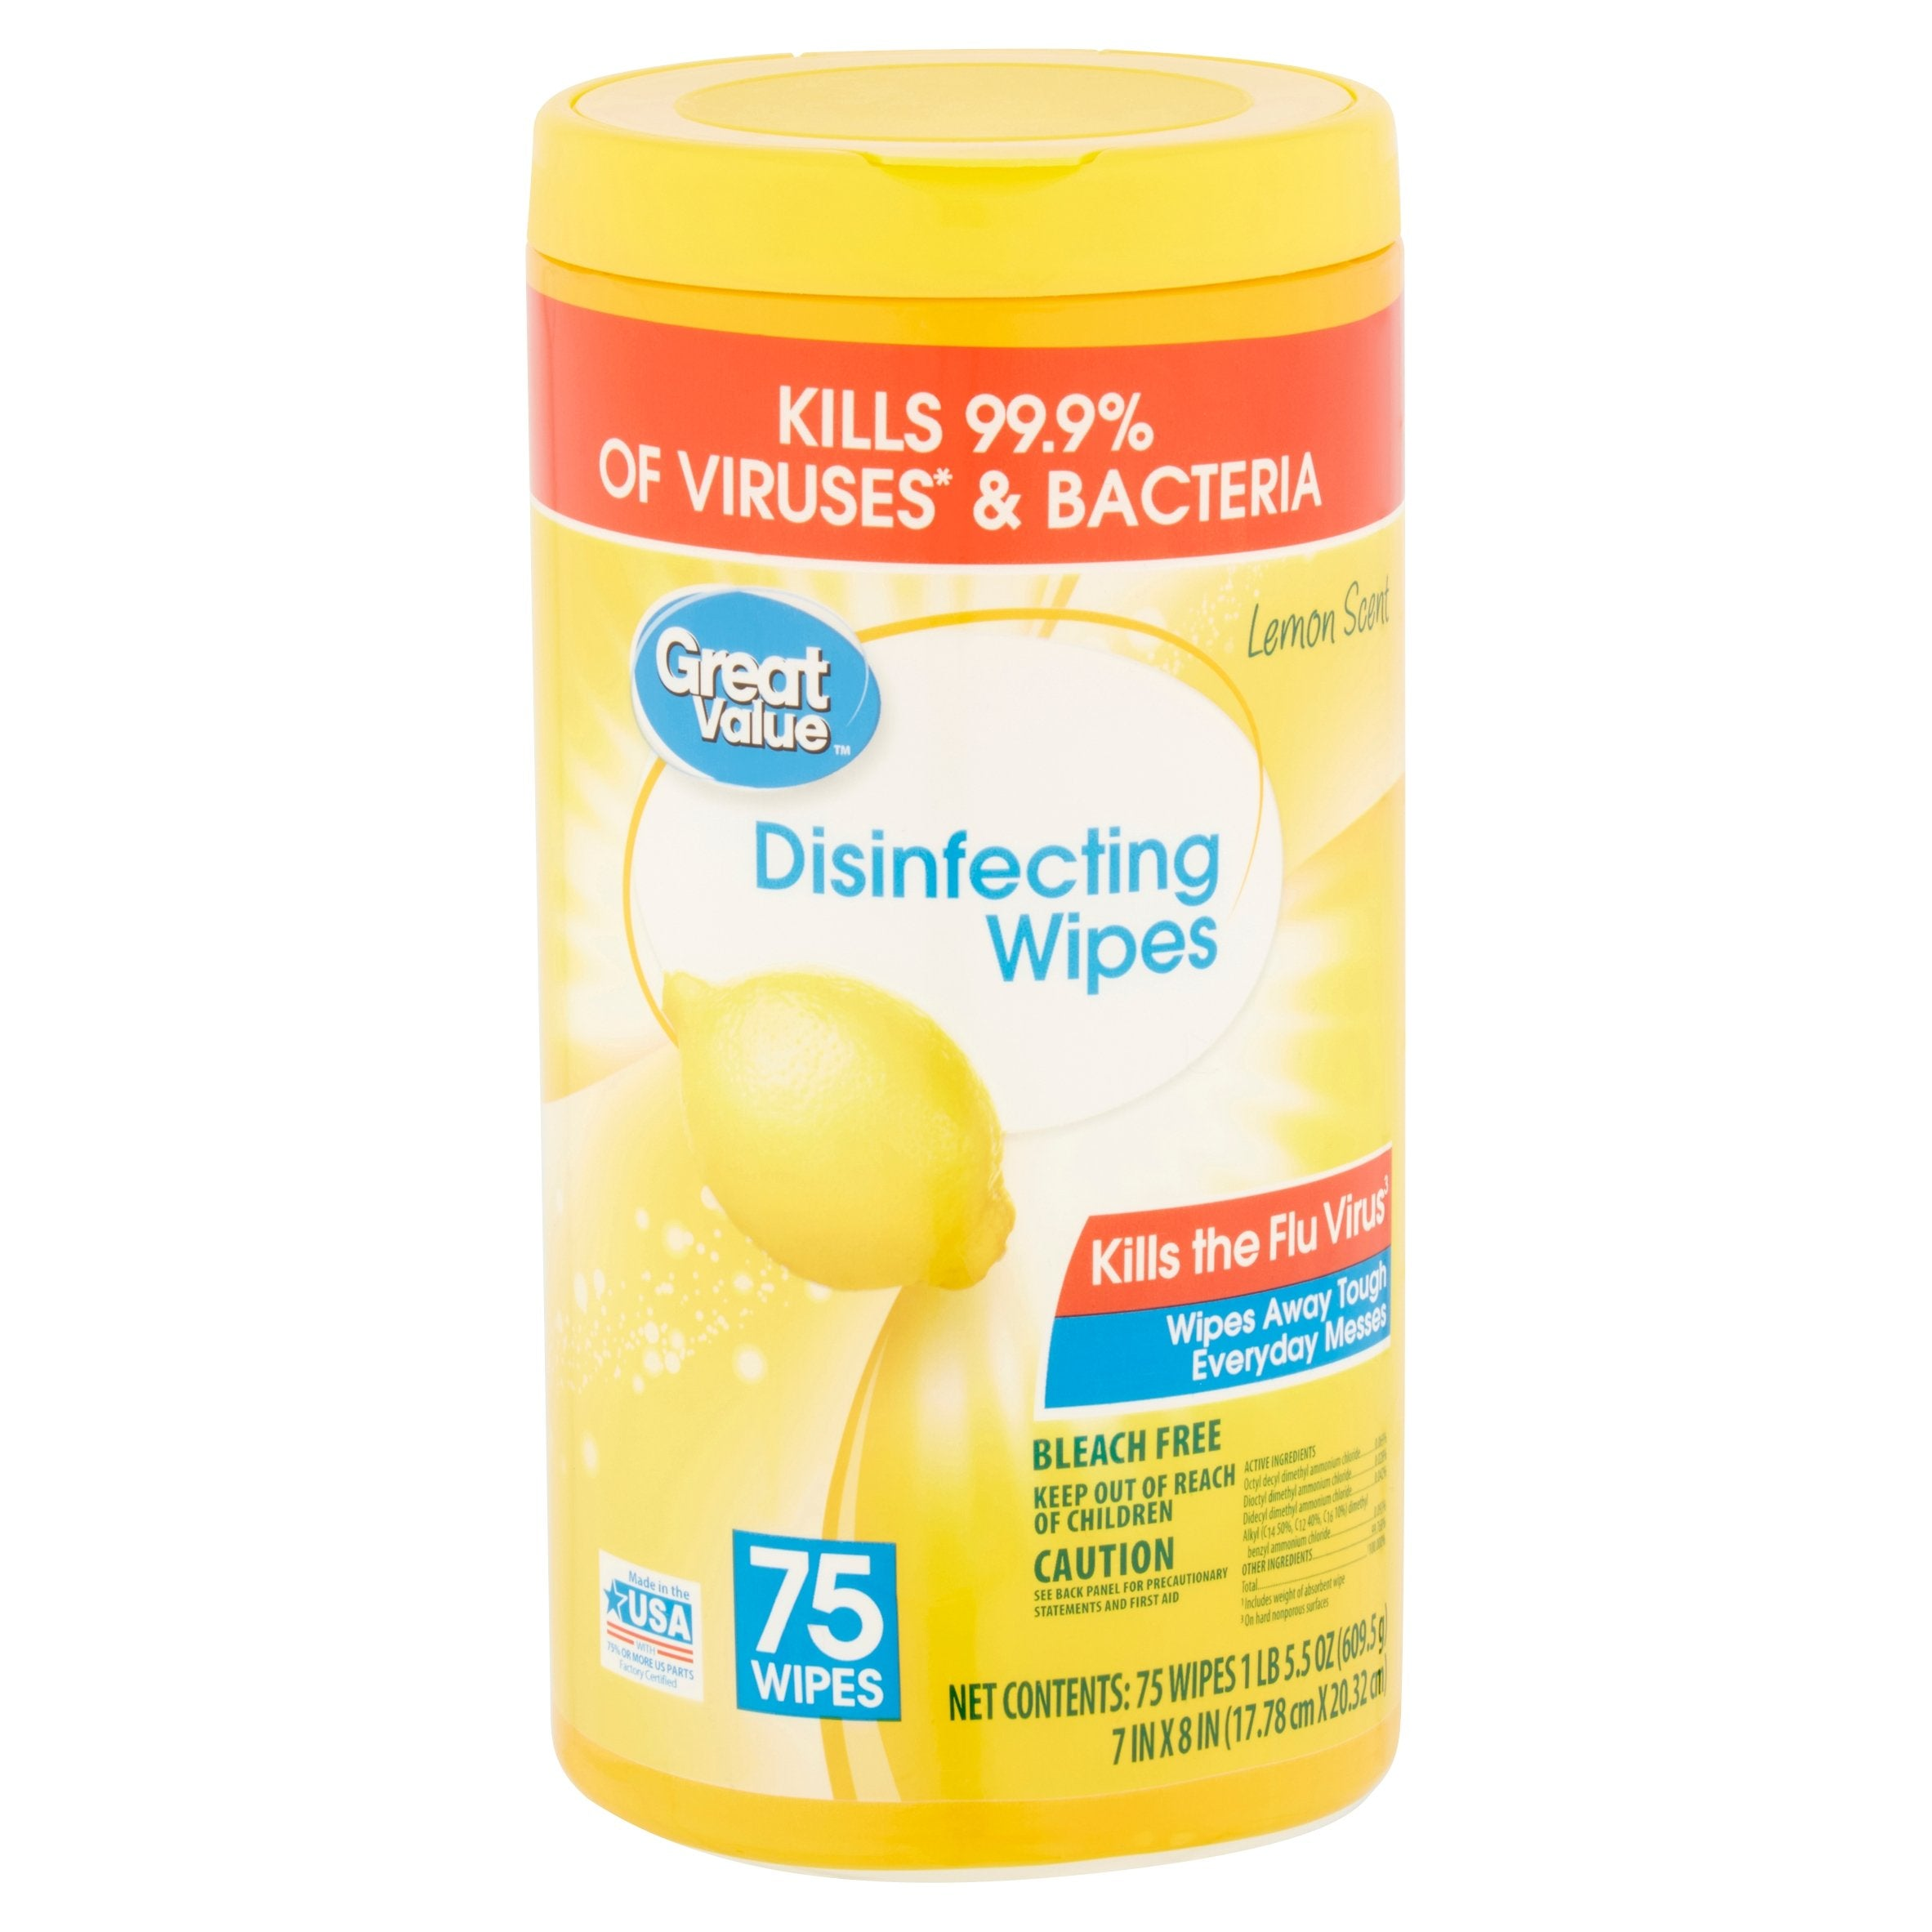 Wipes - 75 Wipes Great Value® Disinfecting Wipes - Kills The Flu Virus- 1 Canisters Of 75 Wipes - Lemon Scent - EPA - Made In USA